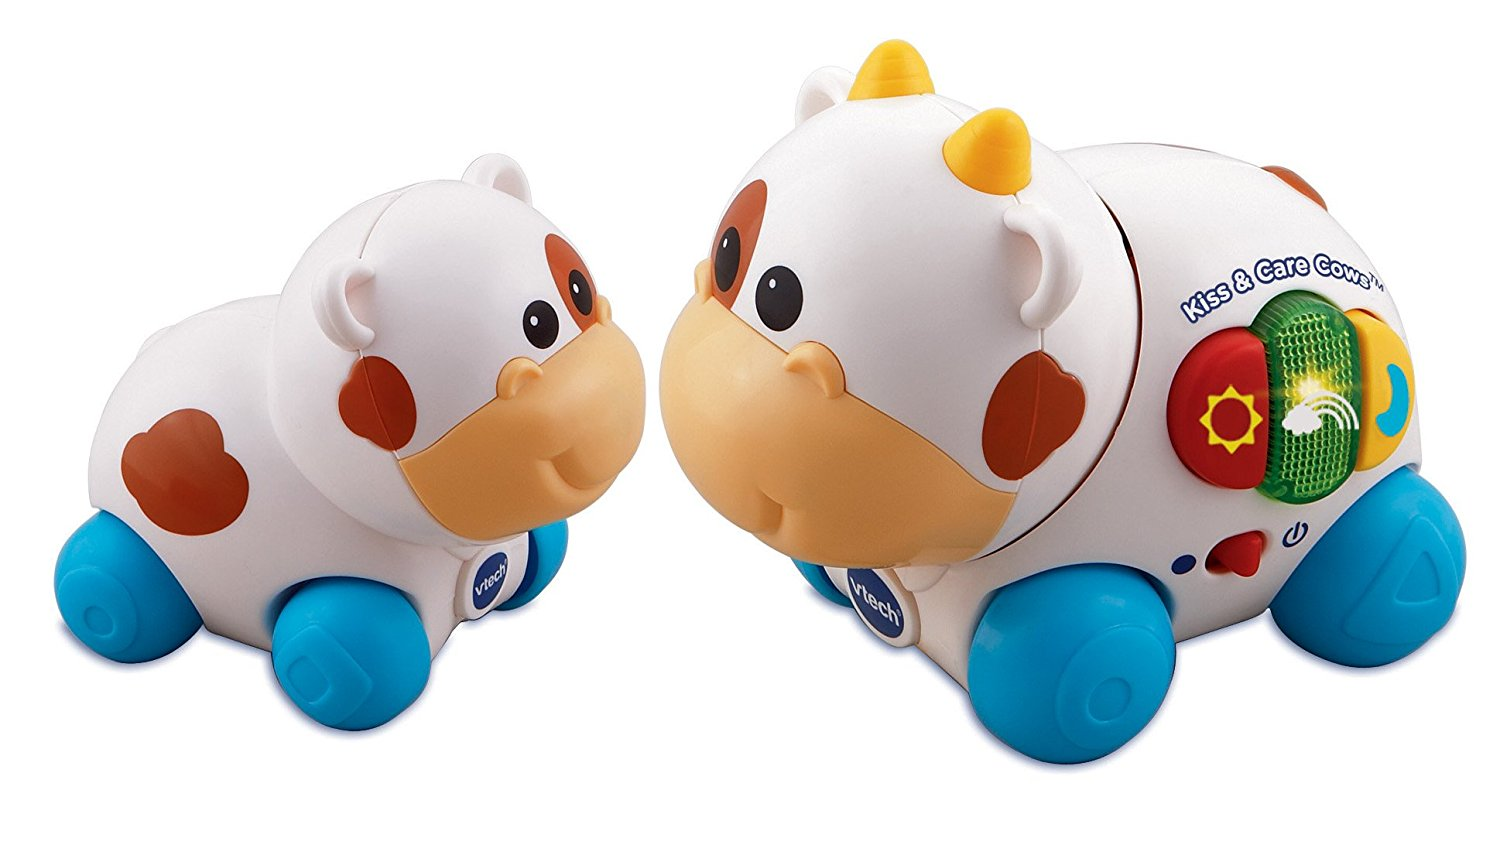 VTech Kiss and Care Cows